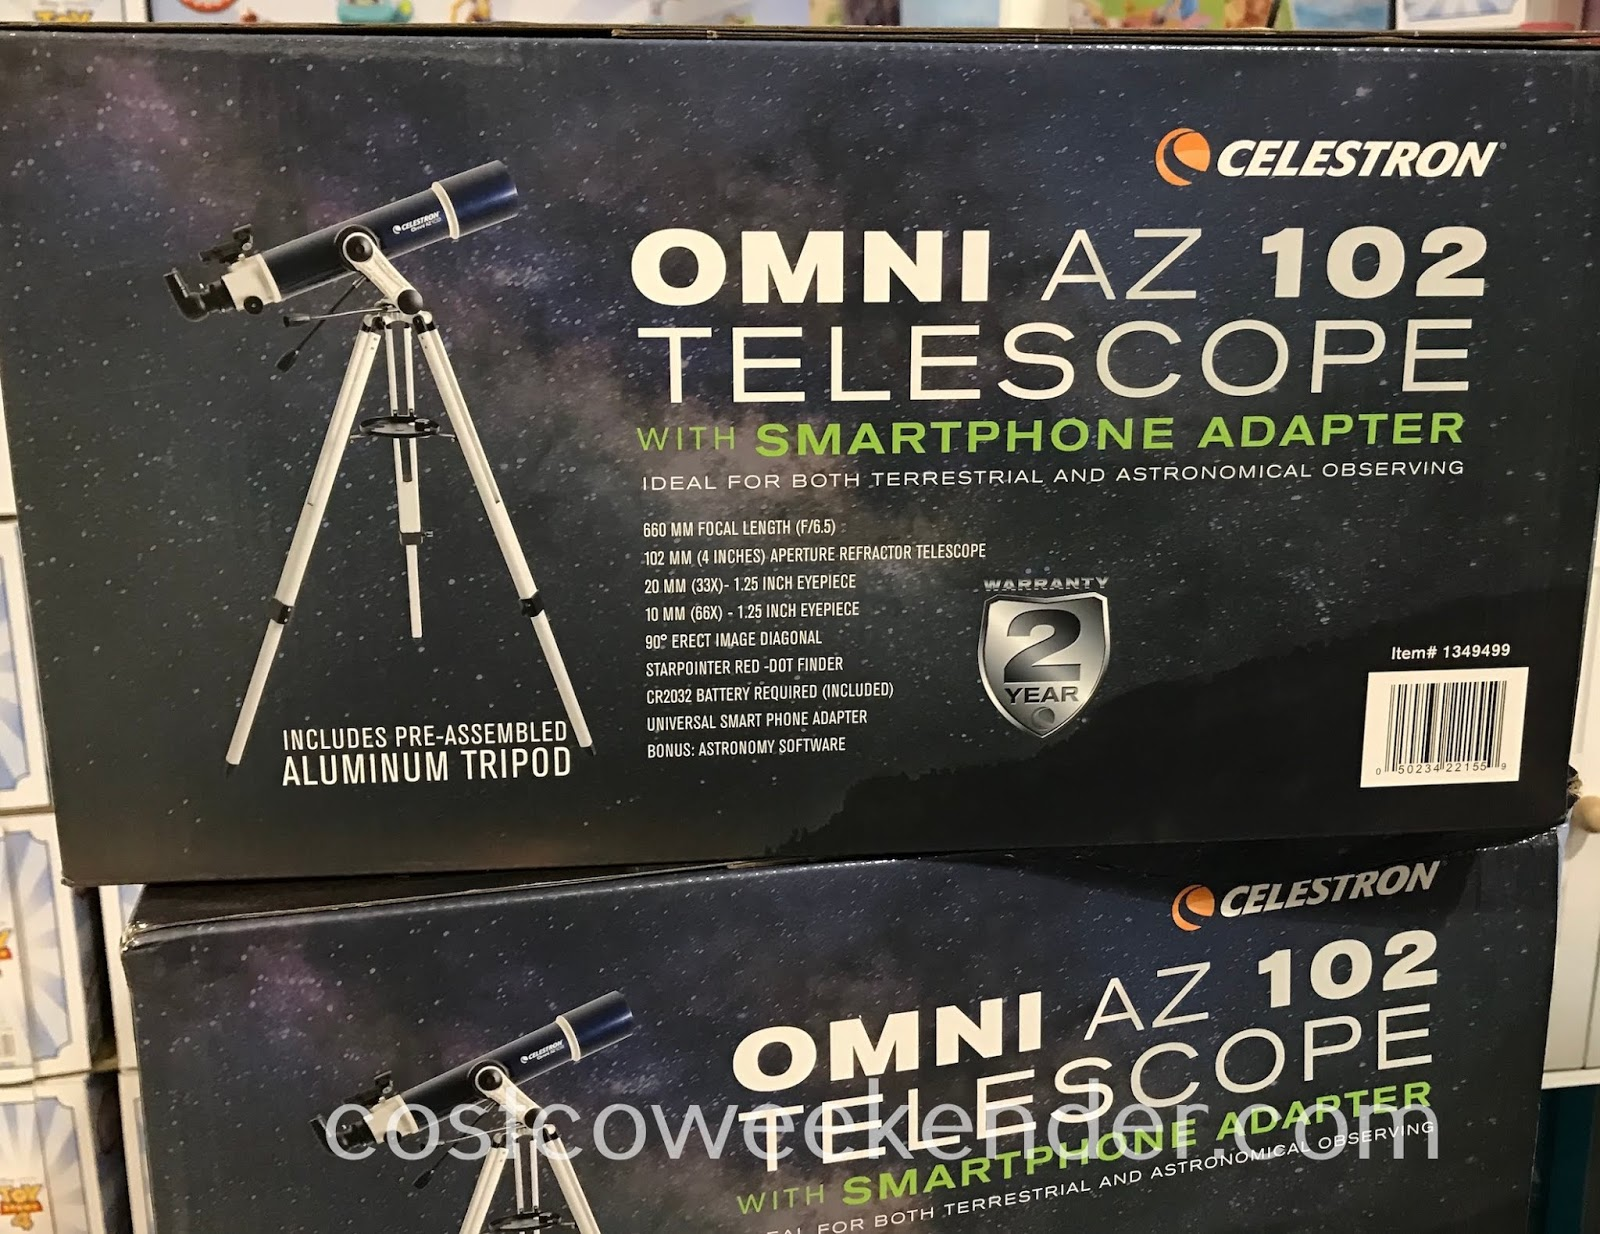 Costco 1349499 - Celestron Omni AZ 102 Telescope: great for any aspiring astronomer looking at the stars